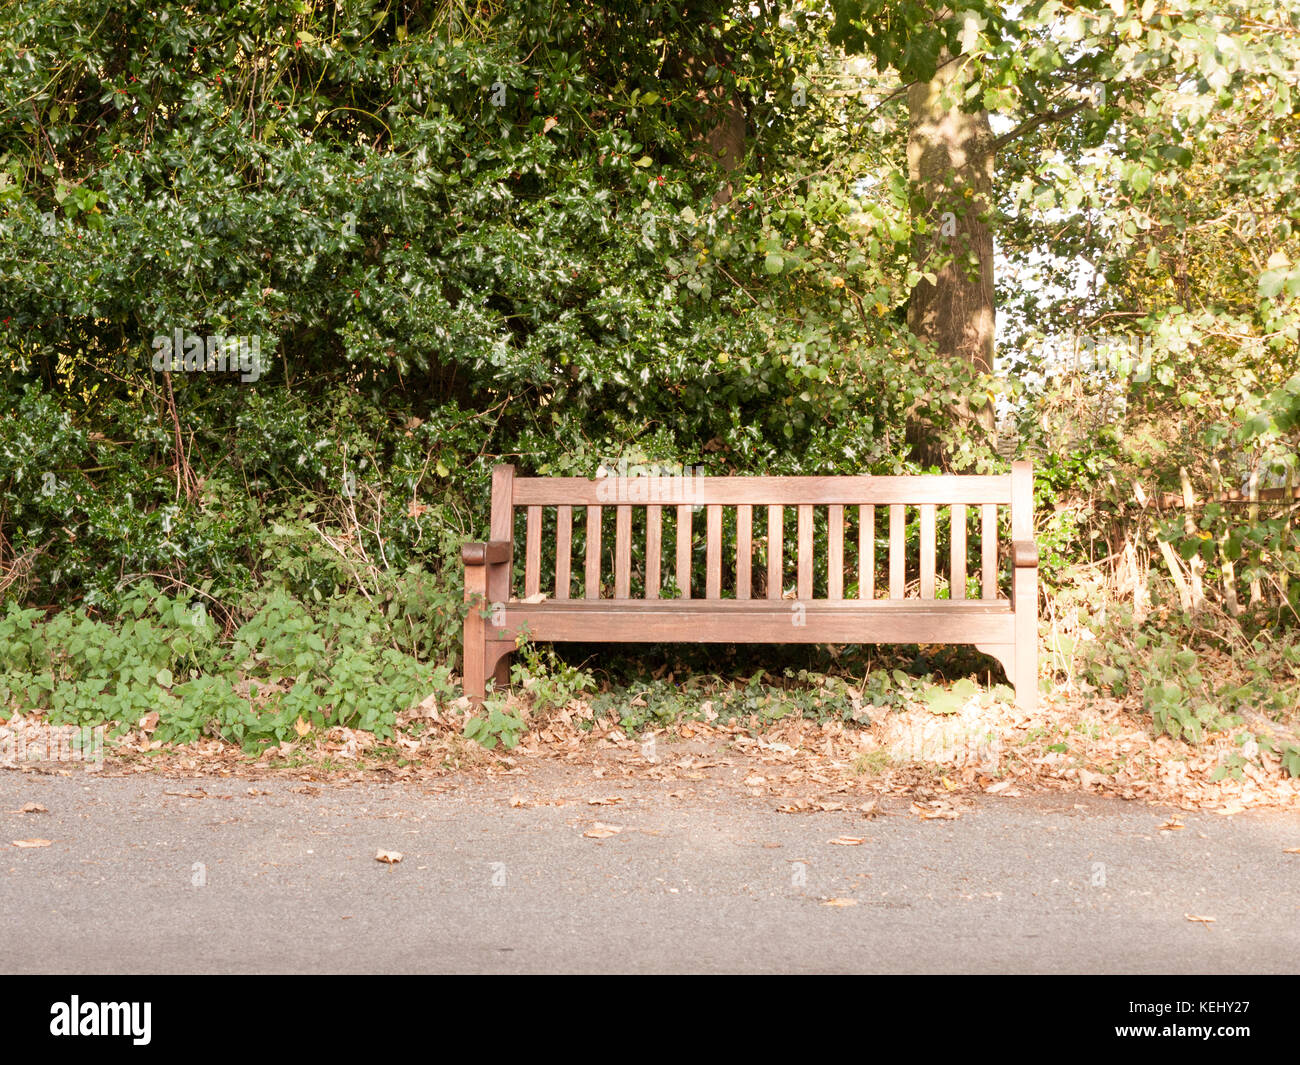 Wooden Park Benches Front Meditative Landscapes Stock Photos And Meditative Landscapes